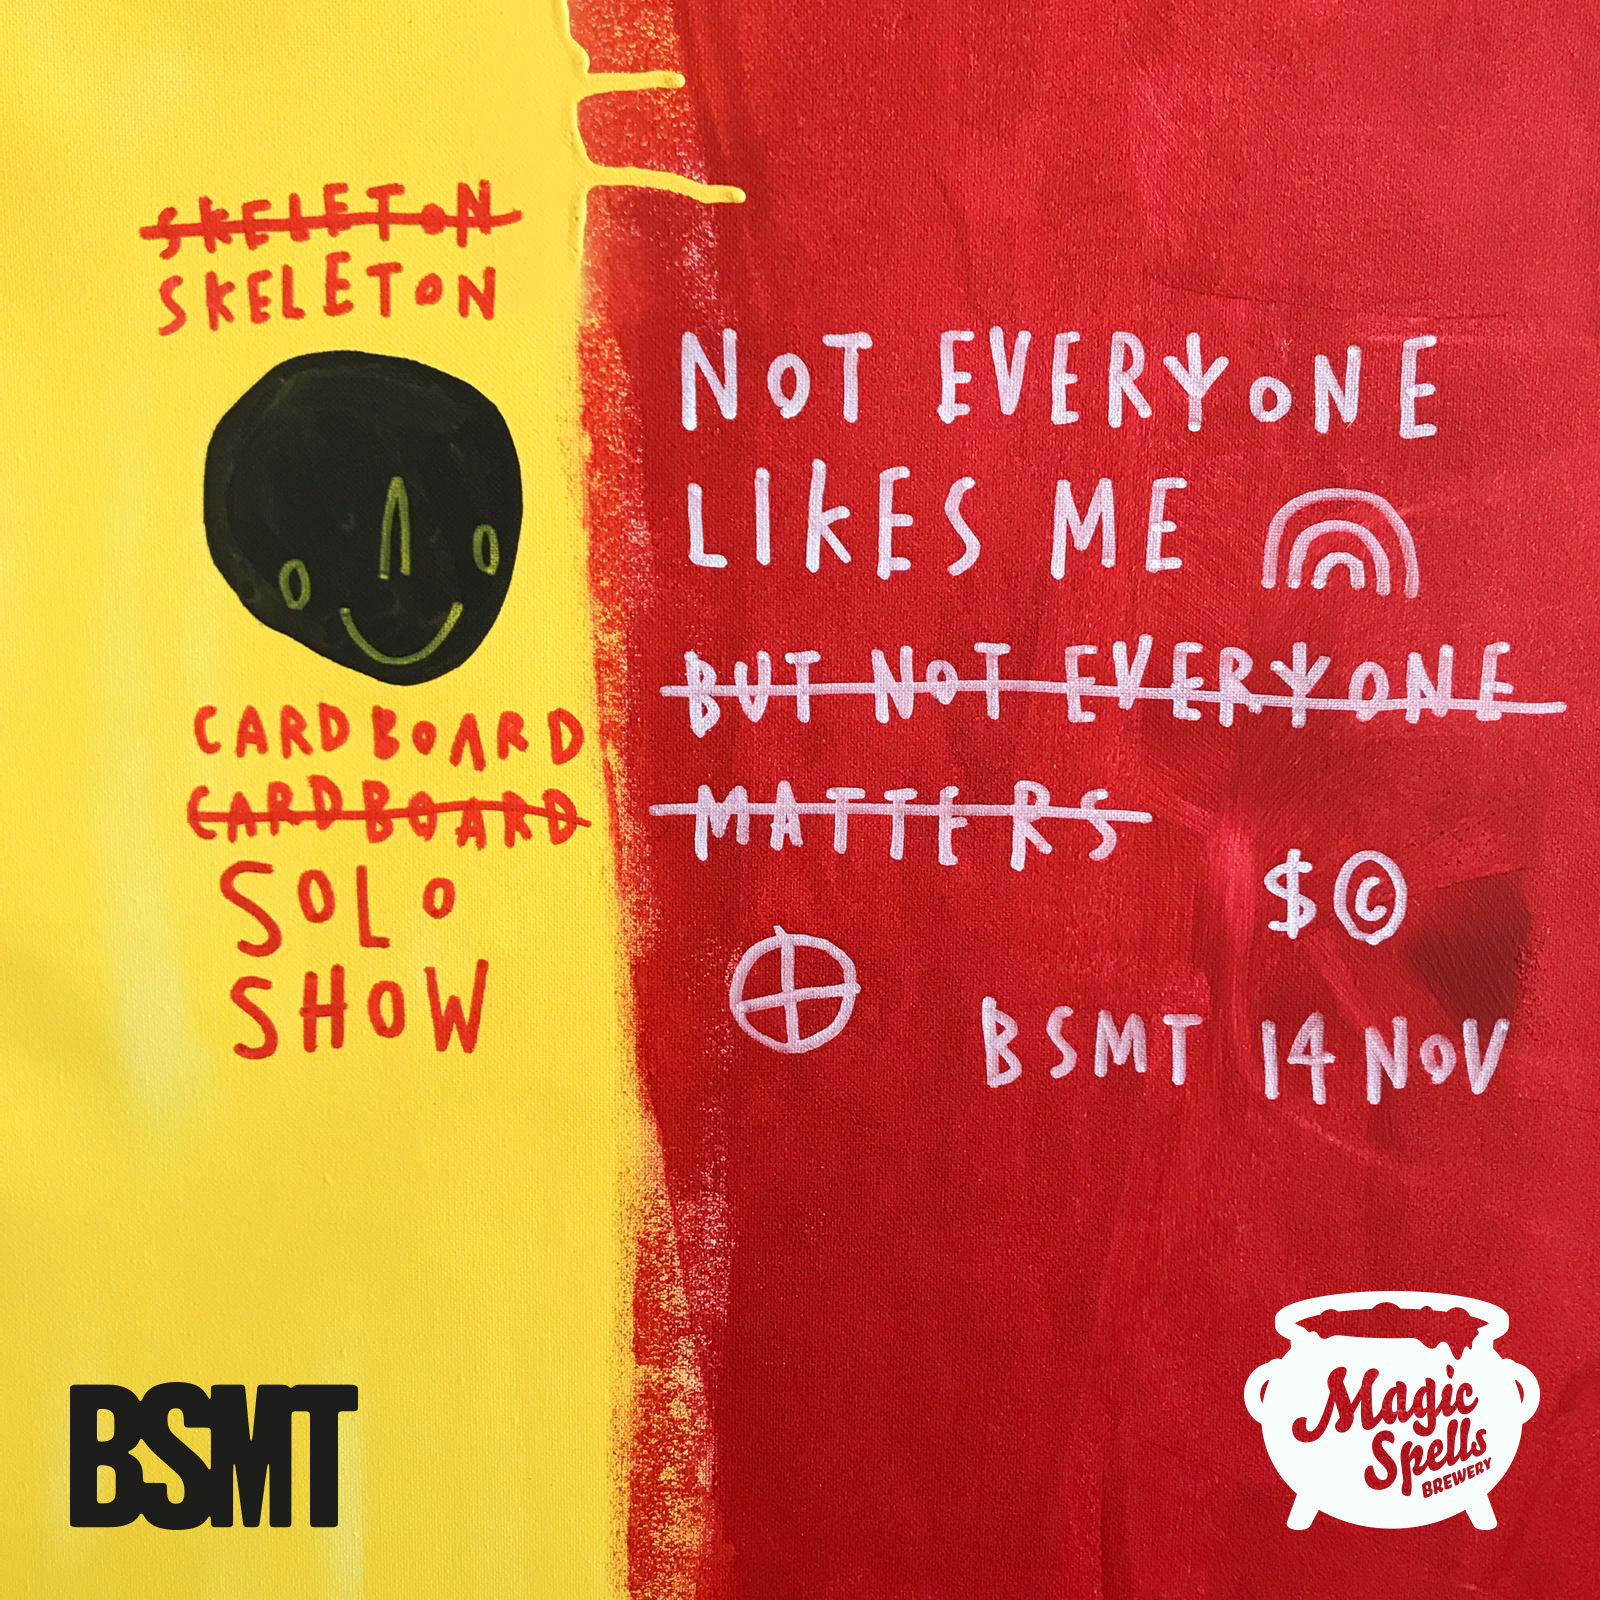 Not Everyone Likes Me: a solo show by Skeleton Cardboard